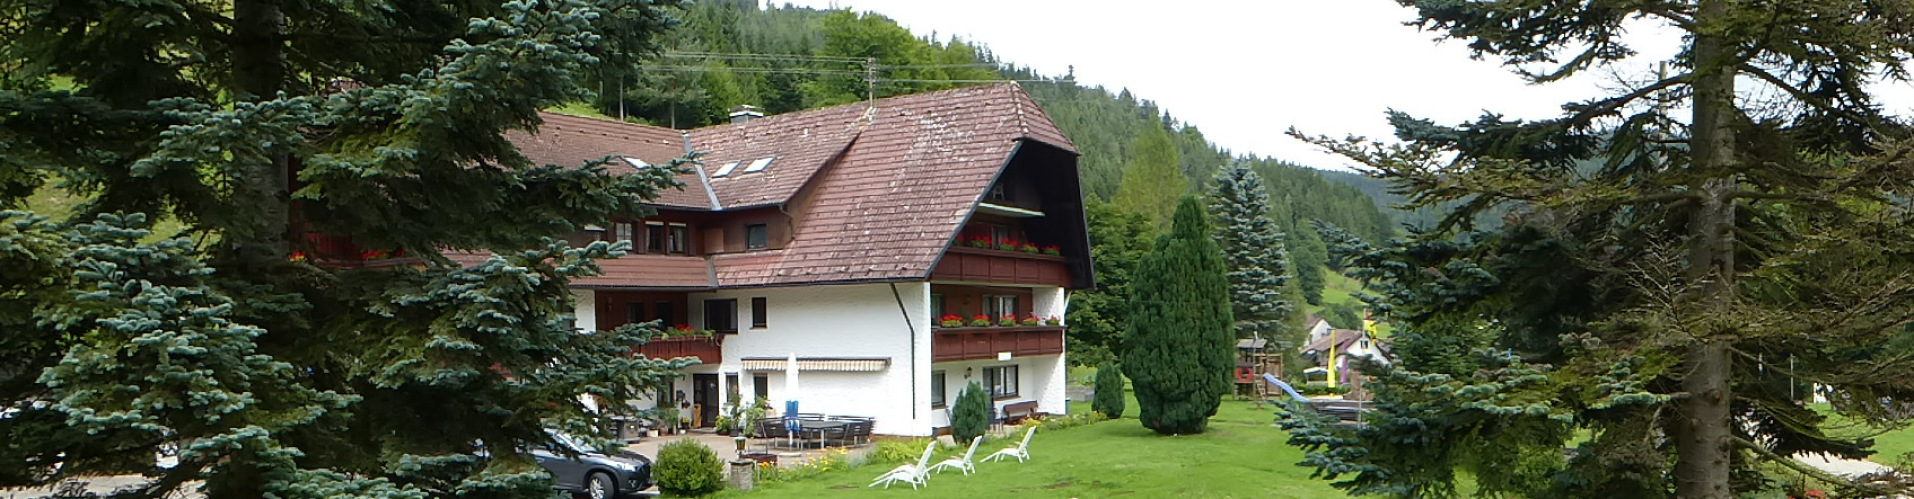 apartments Gästehaus Absbachtal